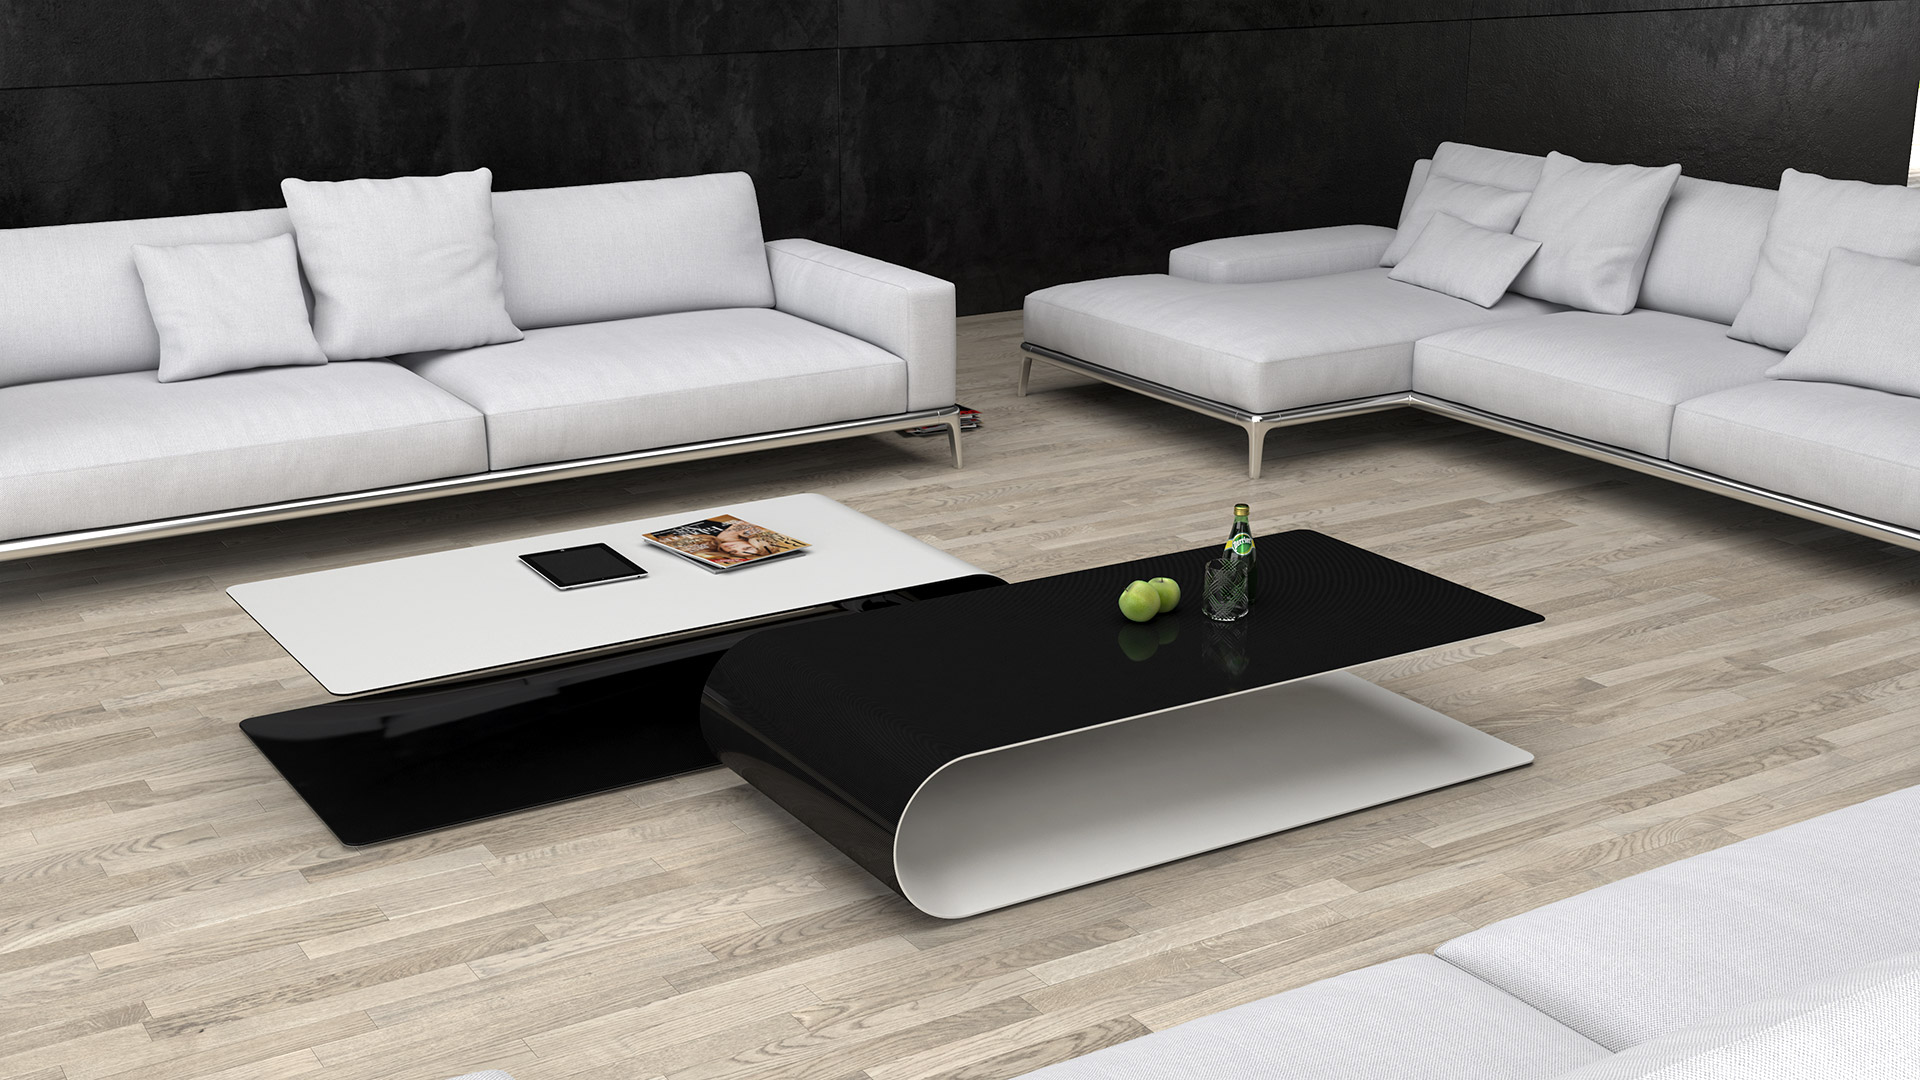 BOOMERANG. Low table or side table made of carbon fiber, Kevlar and structural foam. Matte white painted on the outside, transparent painted carbon fiber on the inside or vice versa.